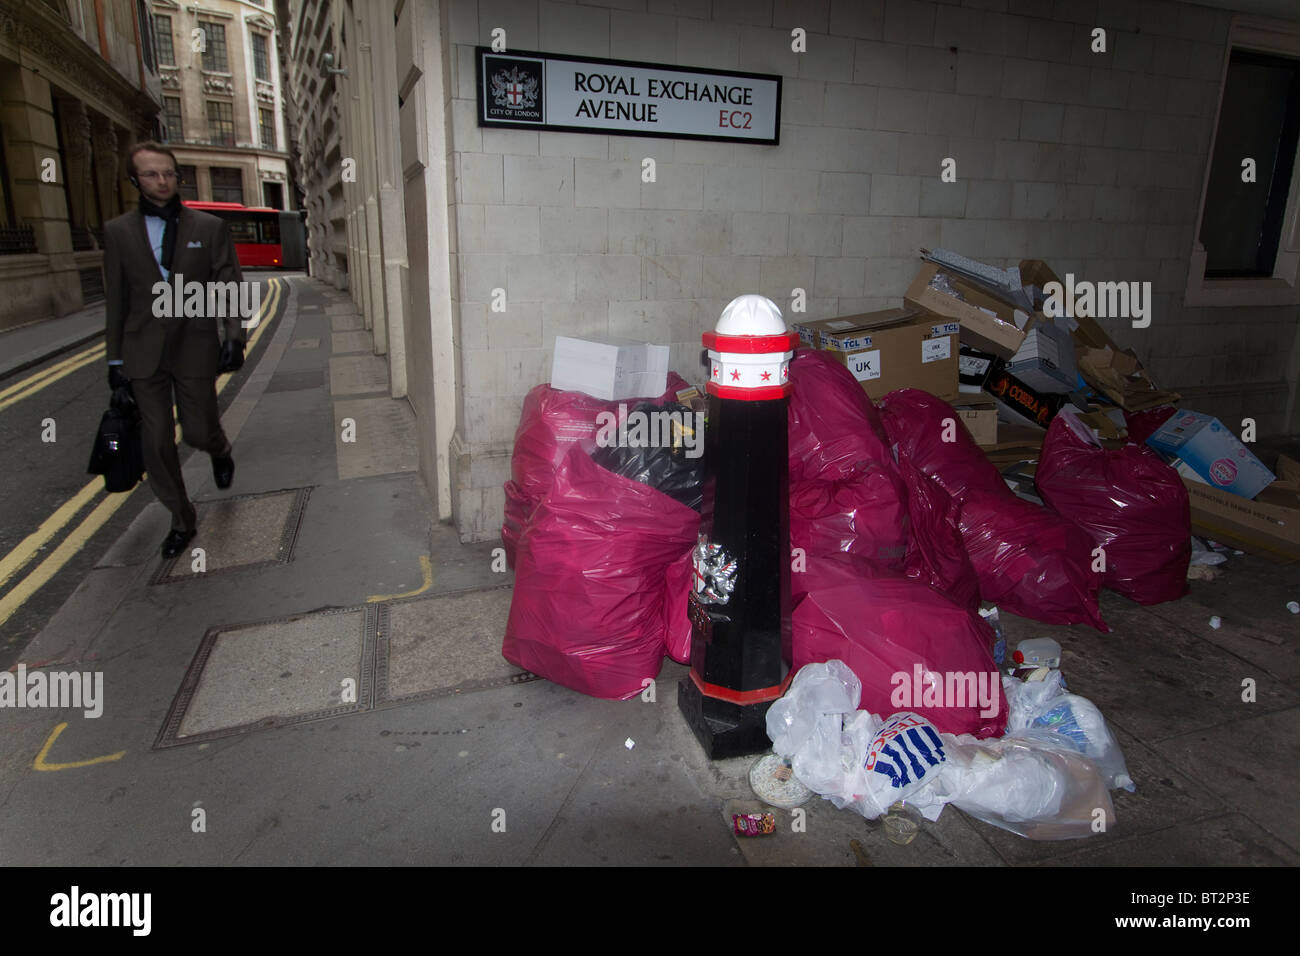 Rubbish piled up in the city of London, bags of trash litter Royal exchange avenue - Stock Image